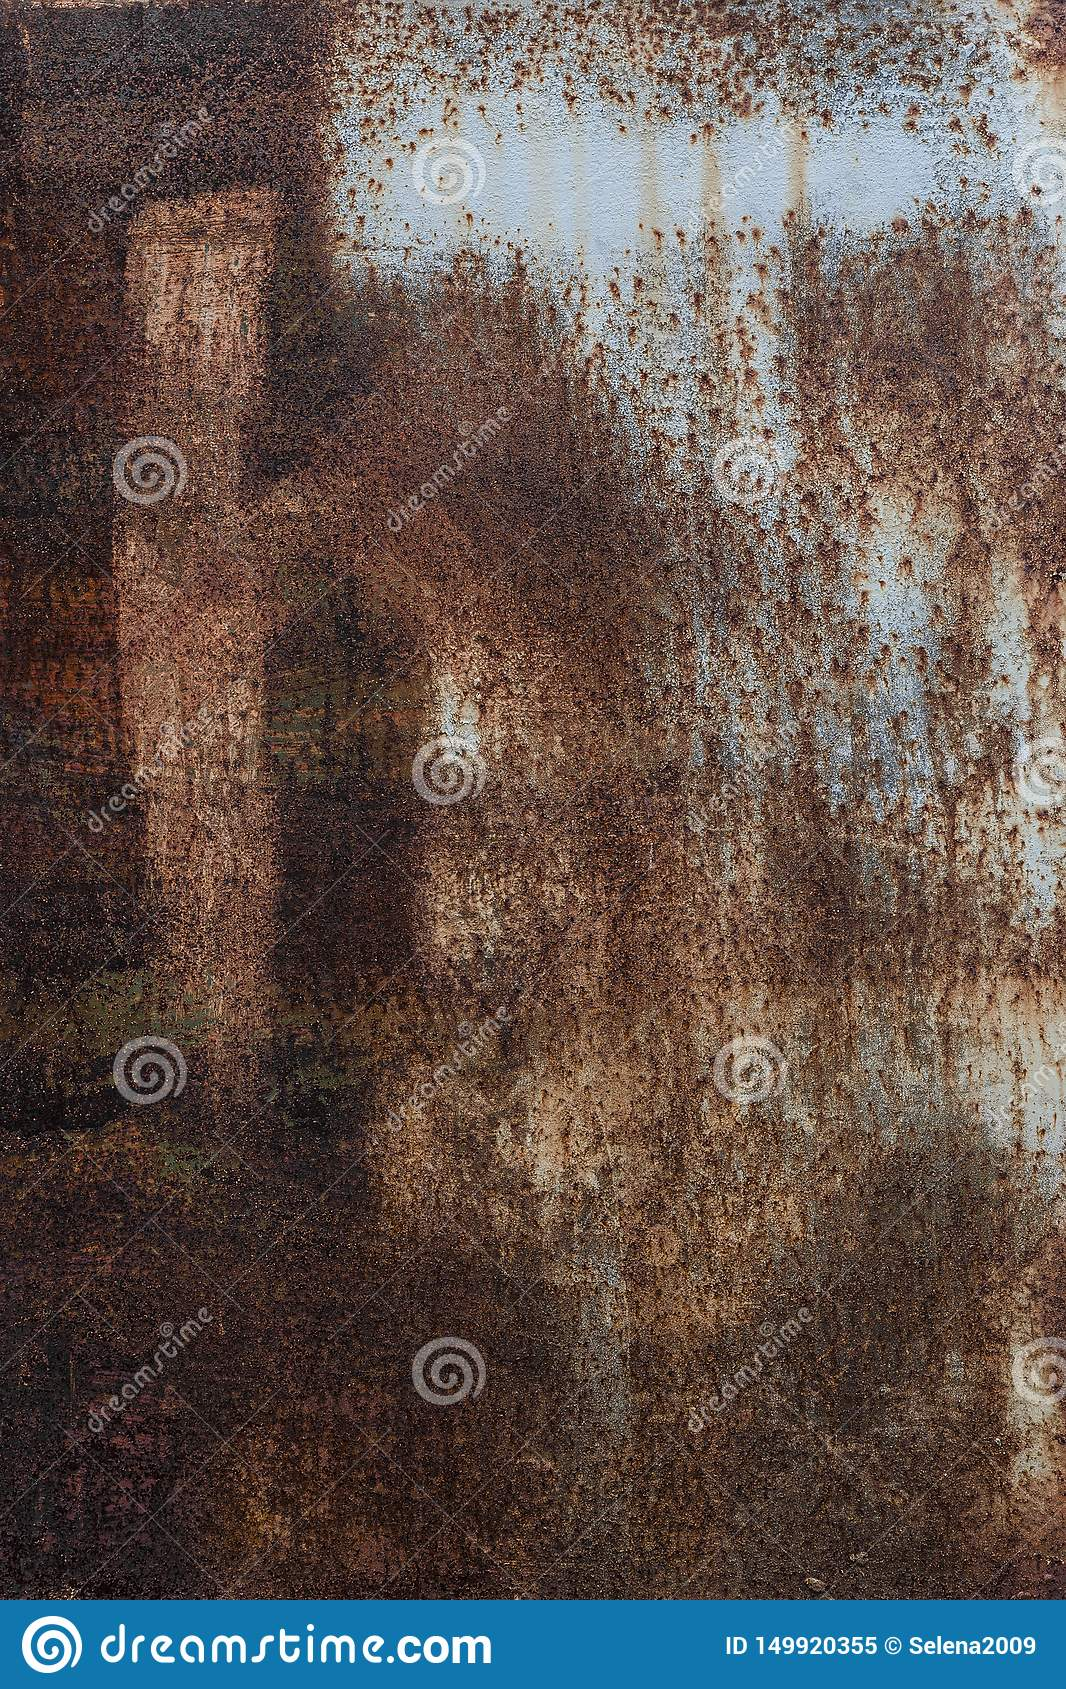 Rusty background. Old rusty metal sheet. Red rusted wall of the garage. Brown Grunge texture. The inscription is visible